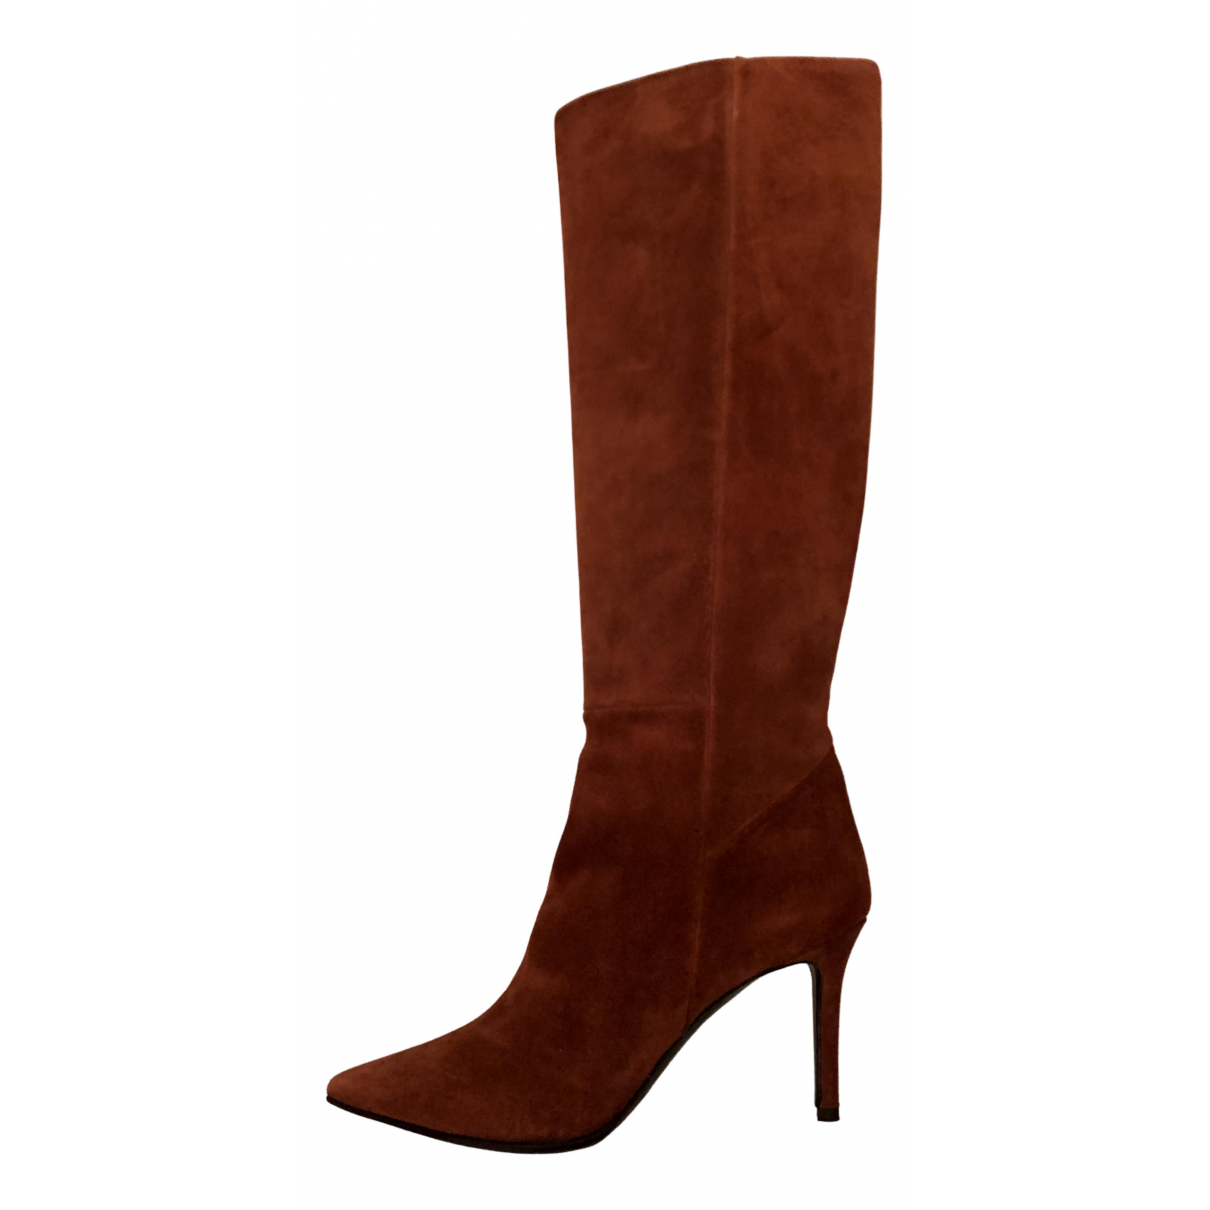 Barbara Bui N Camel Suede Ankle boots for Women 36 EU